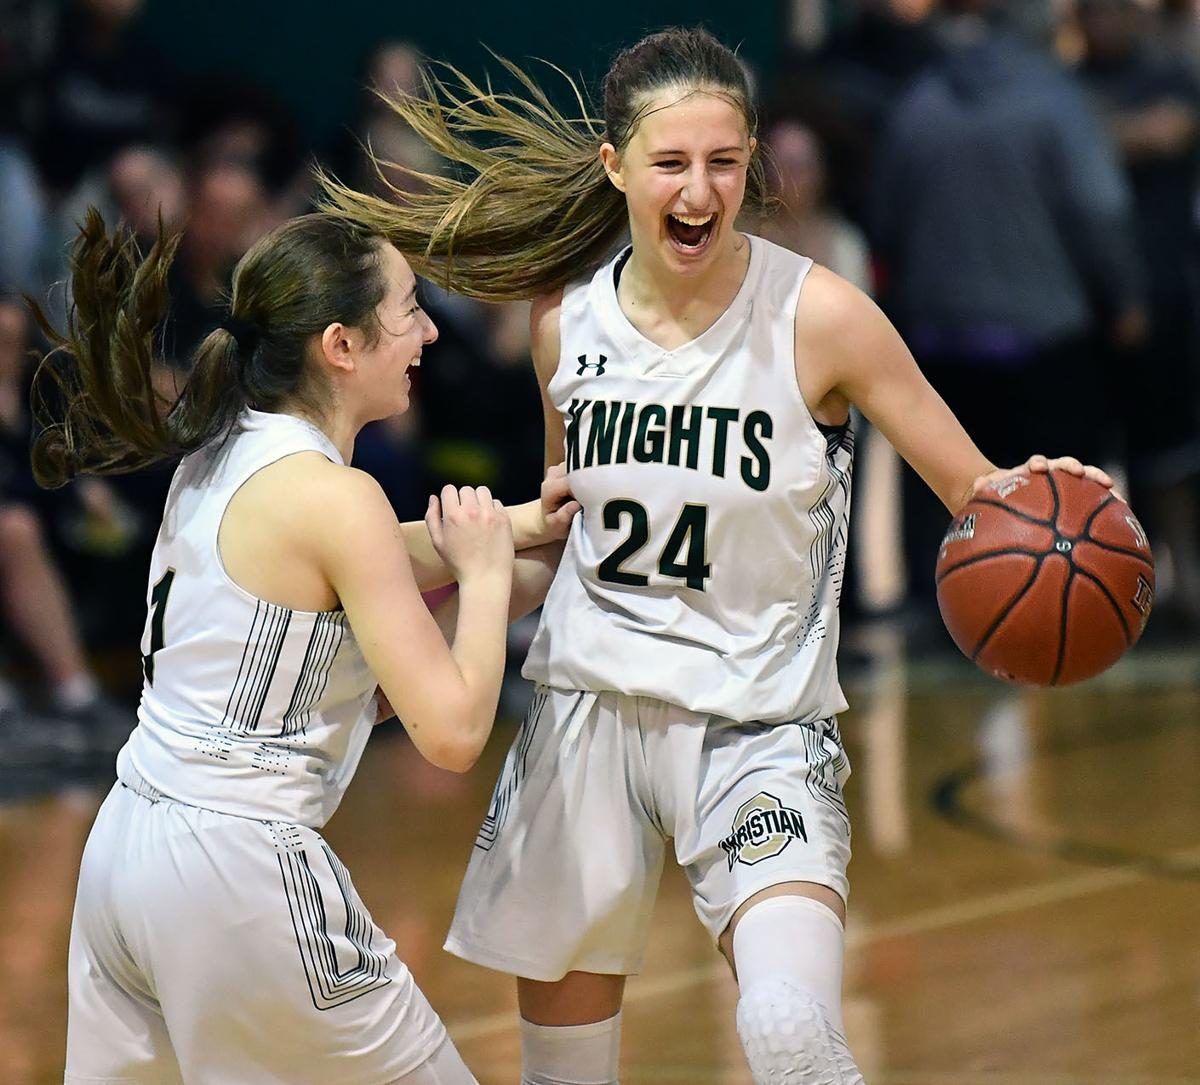 Knights advance to South Region title game; Briggs breaks CIF-Southern Section record for points in a season